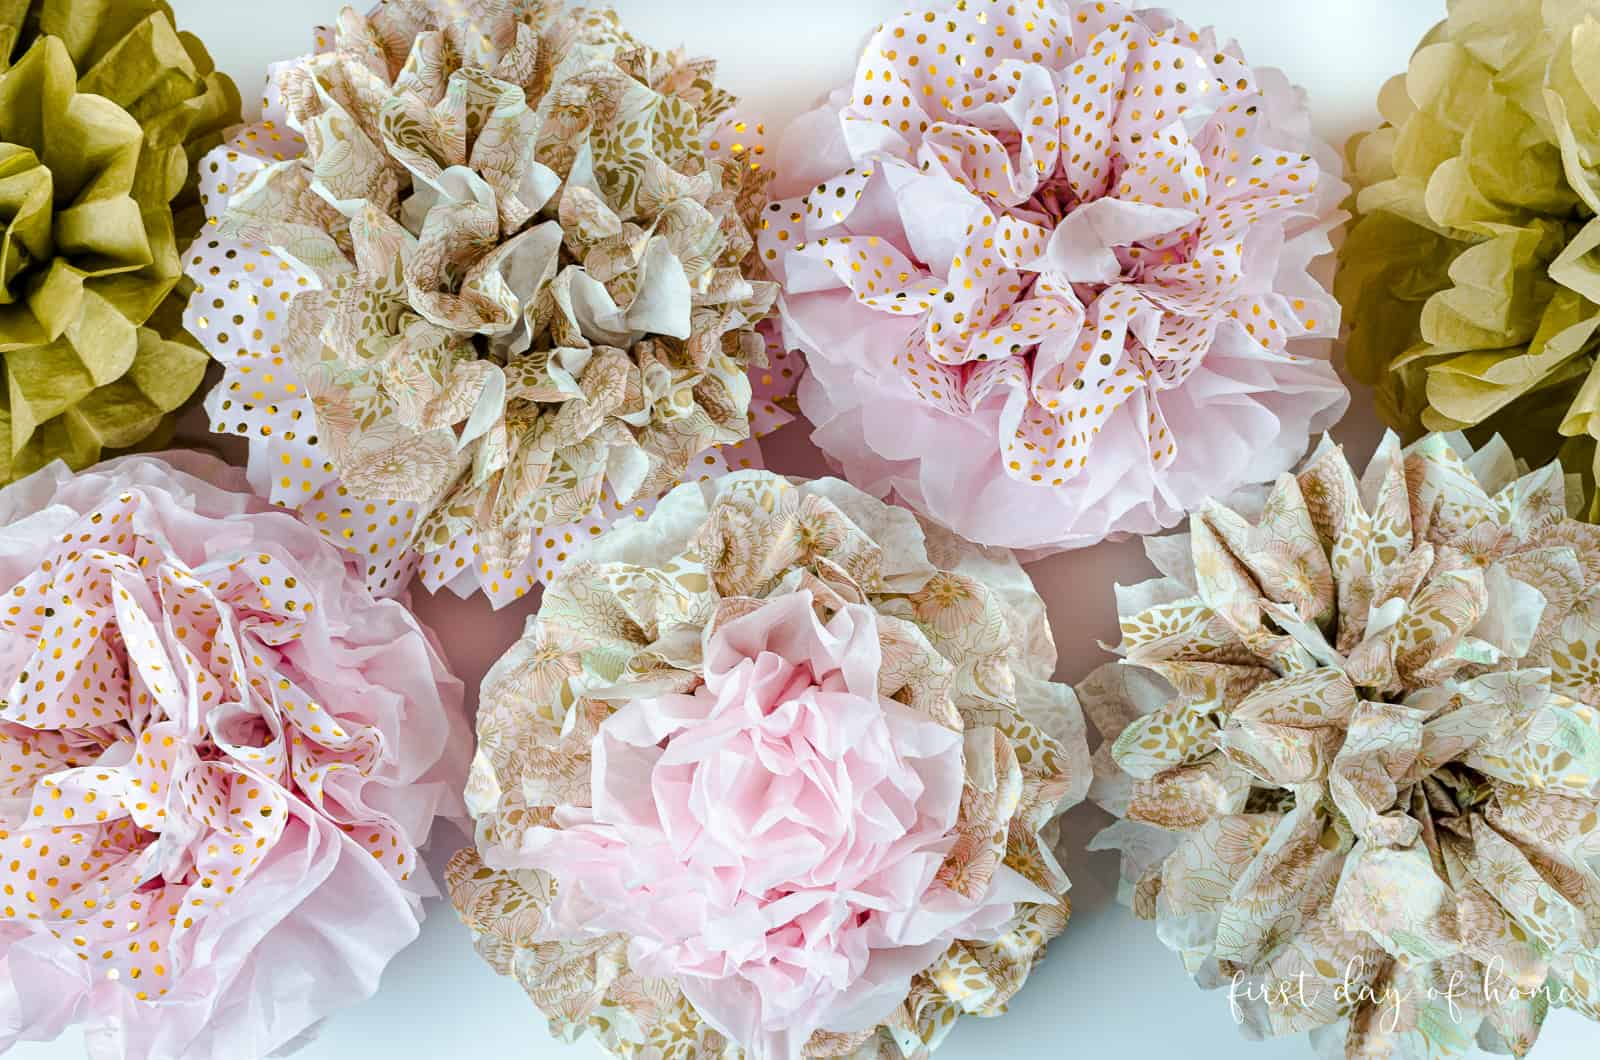 Multicolored tissue paper pom poms in pink and floral patterns